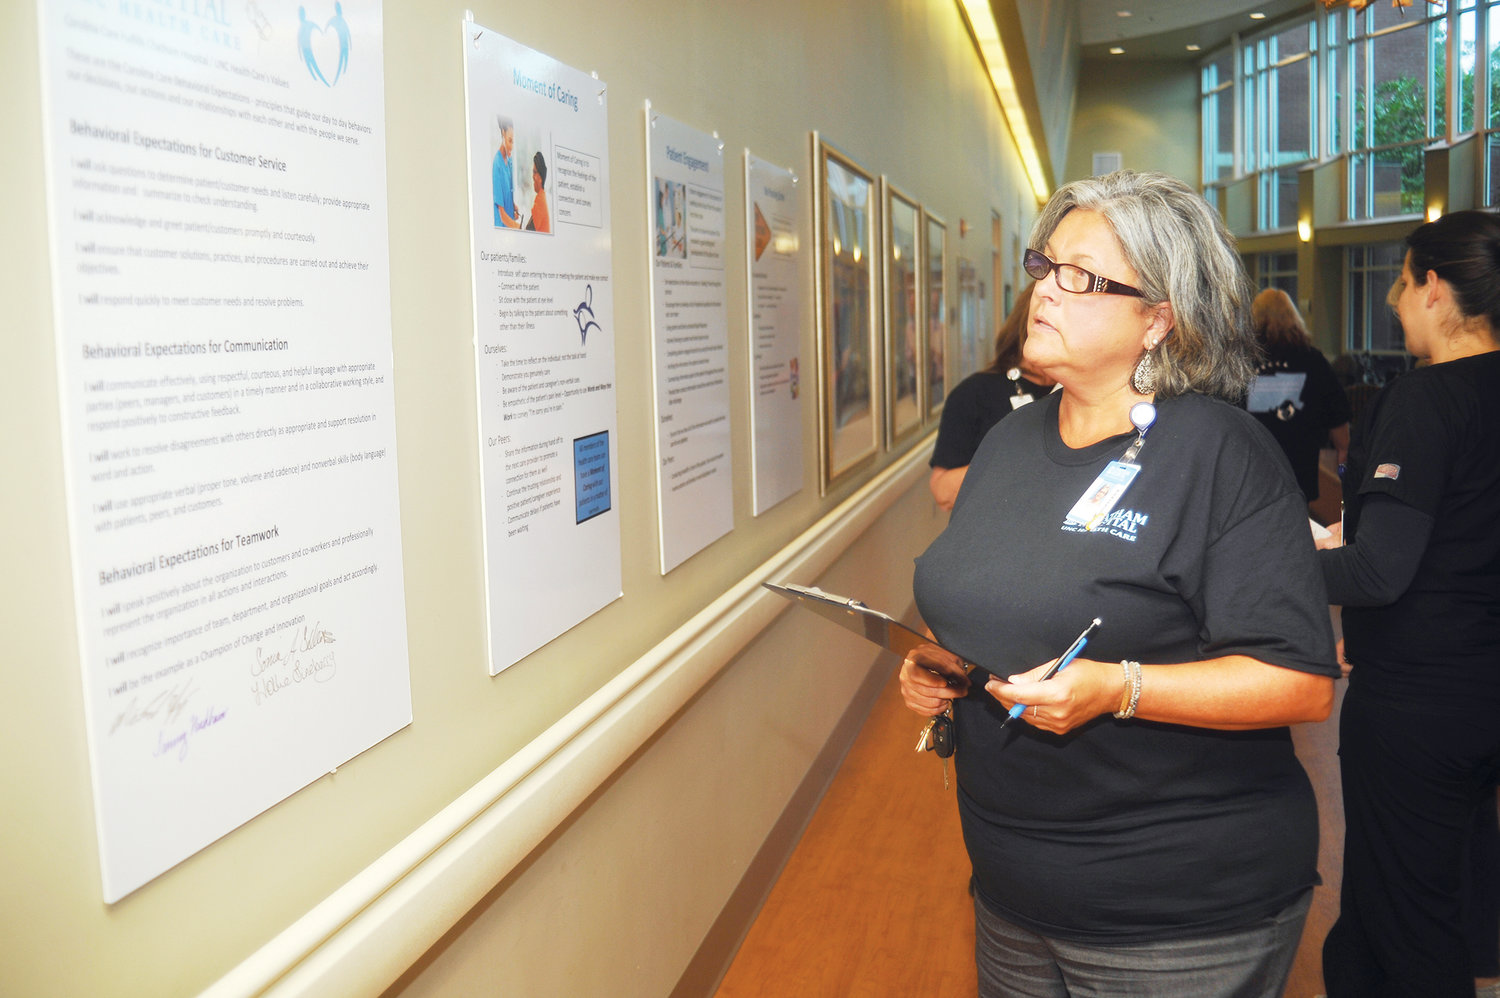 Improving service and care for our customers.Kathy Brown reviews precepts spelled out by the signs about the goals and expectations of the UNC caregiving system Oct. 22. 'It's a reminder,' she said. 'About how we improve service excellence in the system, and a refresher course in customer care.'